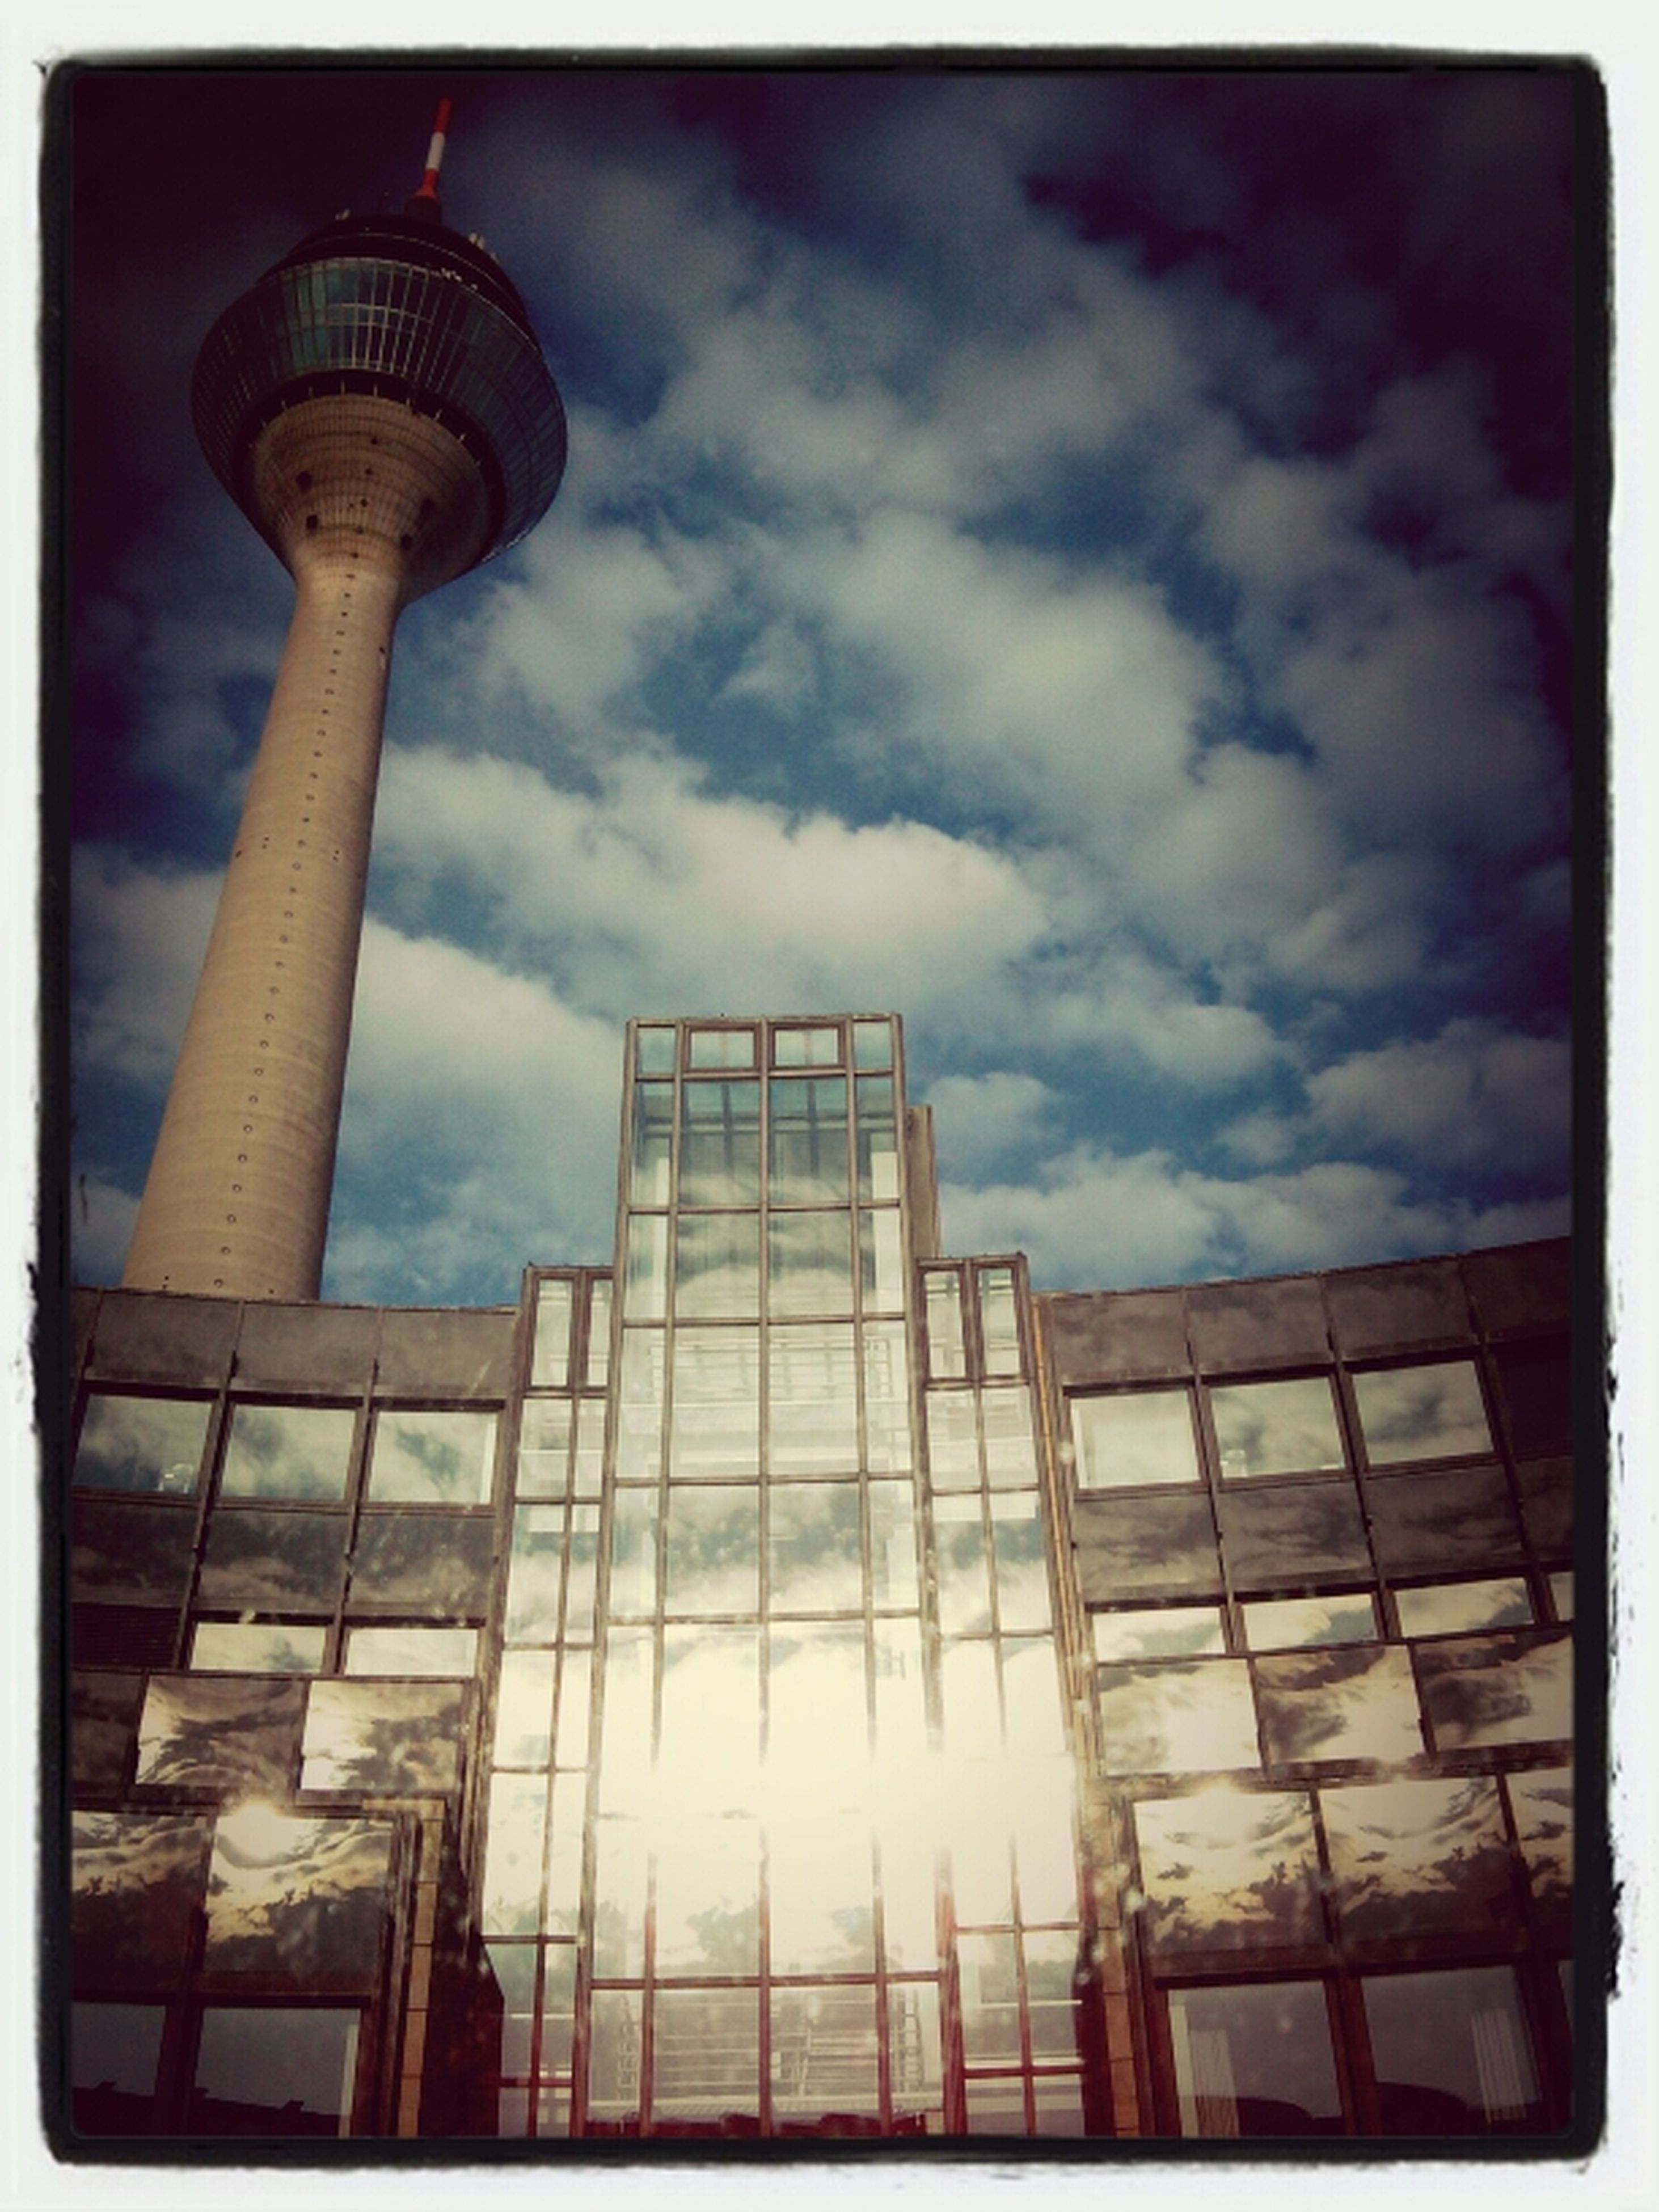 architecture, built structure, building exterior, tower, sky, tall - high, low angle view, transfer print, cloud - sky, city, auto post production filter, famous place, international landmark, travel destinations, capital cities, communications tower, modern, skyscraper, cloudy, communication